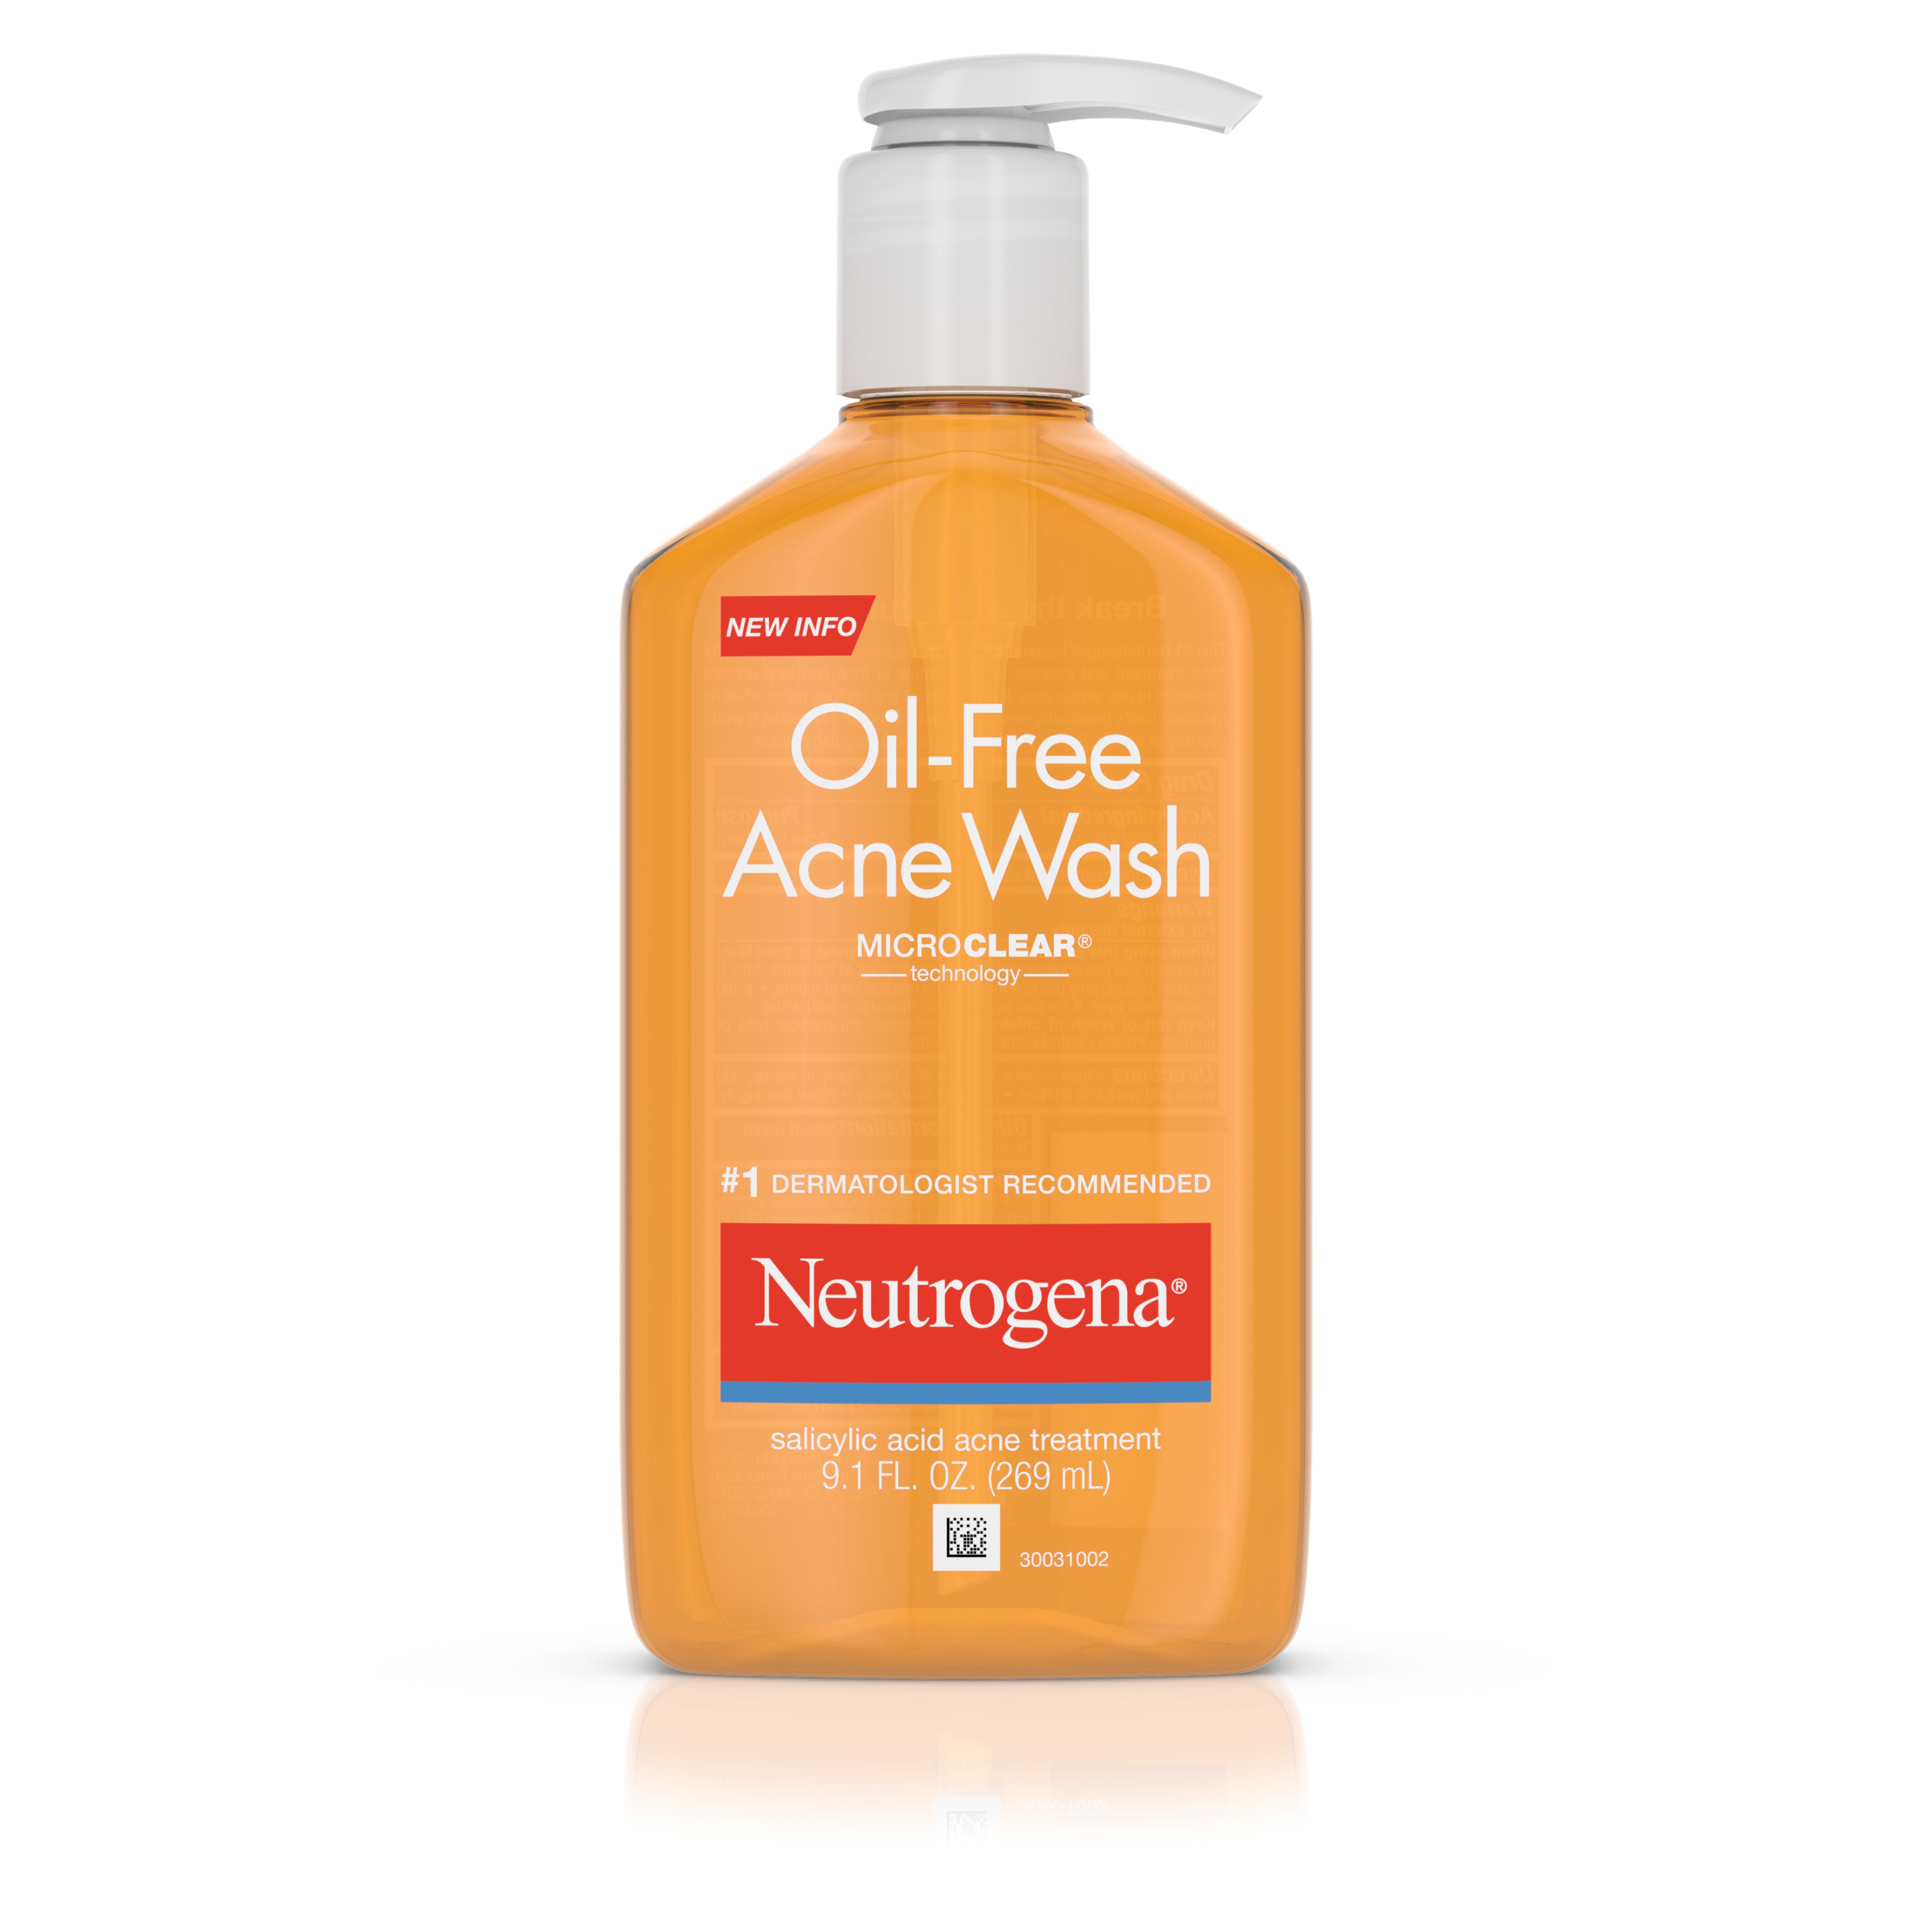 Neutrogena Oil-Free Acne Face Wash With Salicylic Acid, 9.1 Oz. - Walmart.com